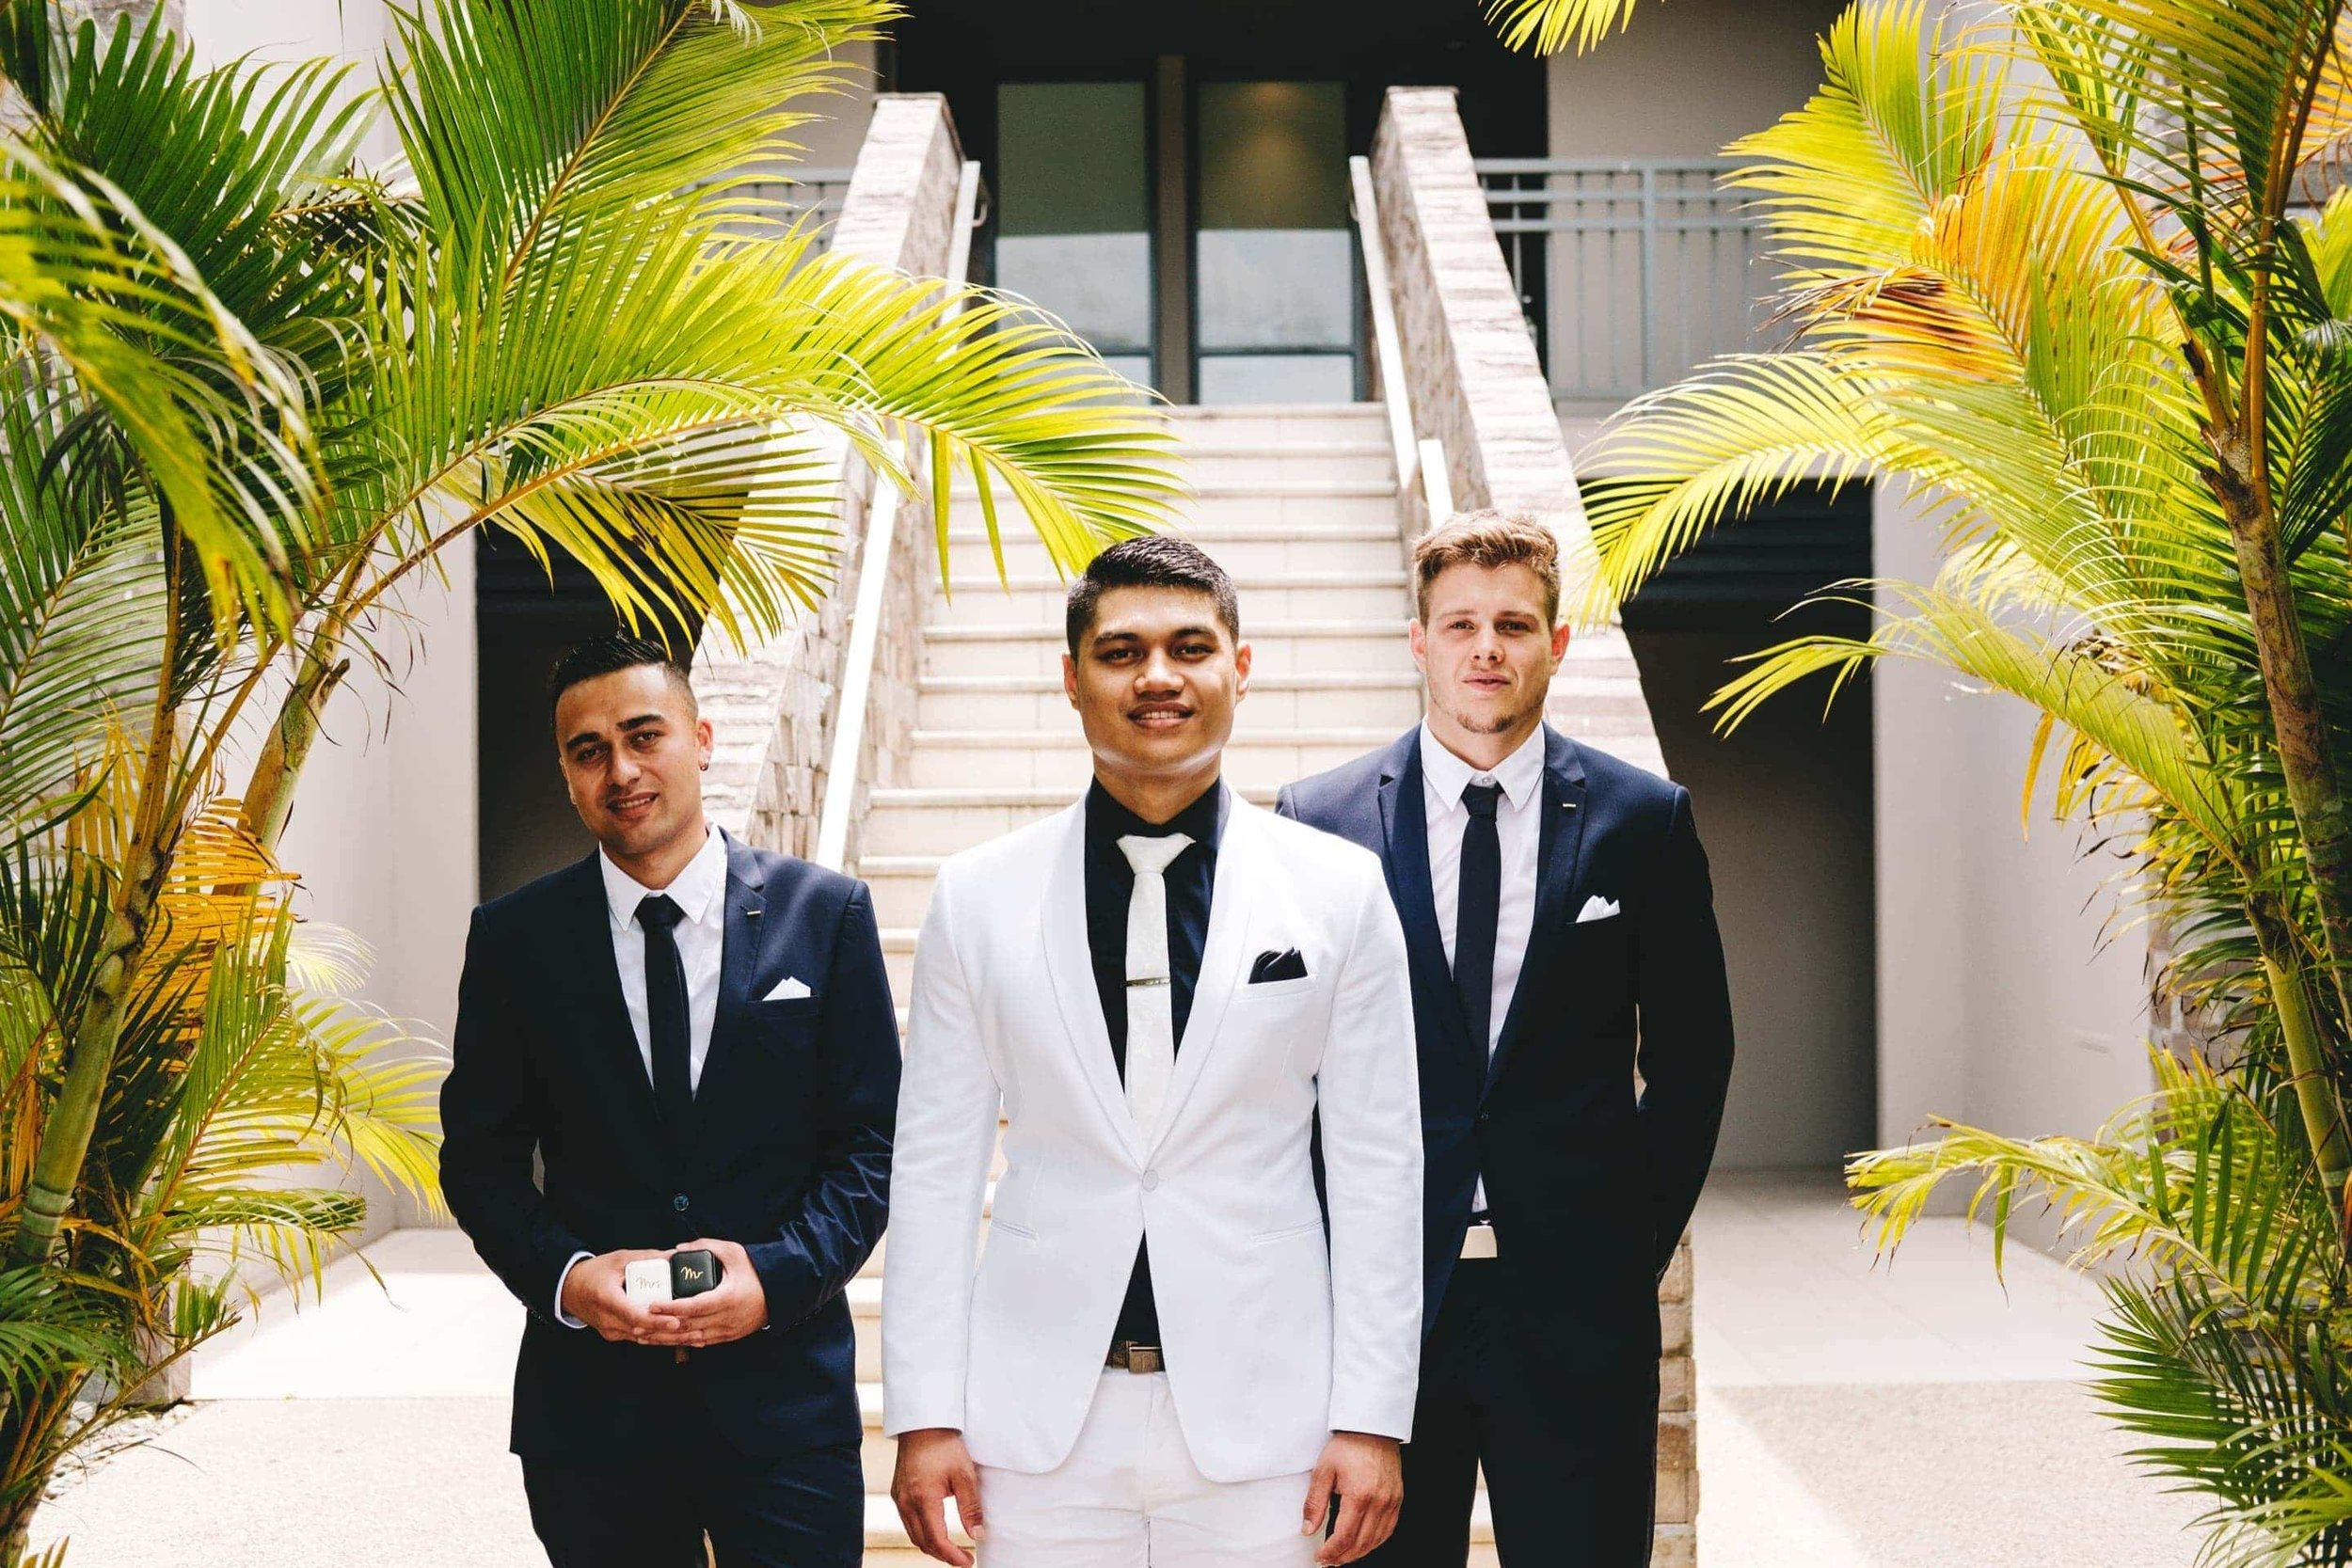 the groom and groomsmen posing for a photo after getting ready